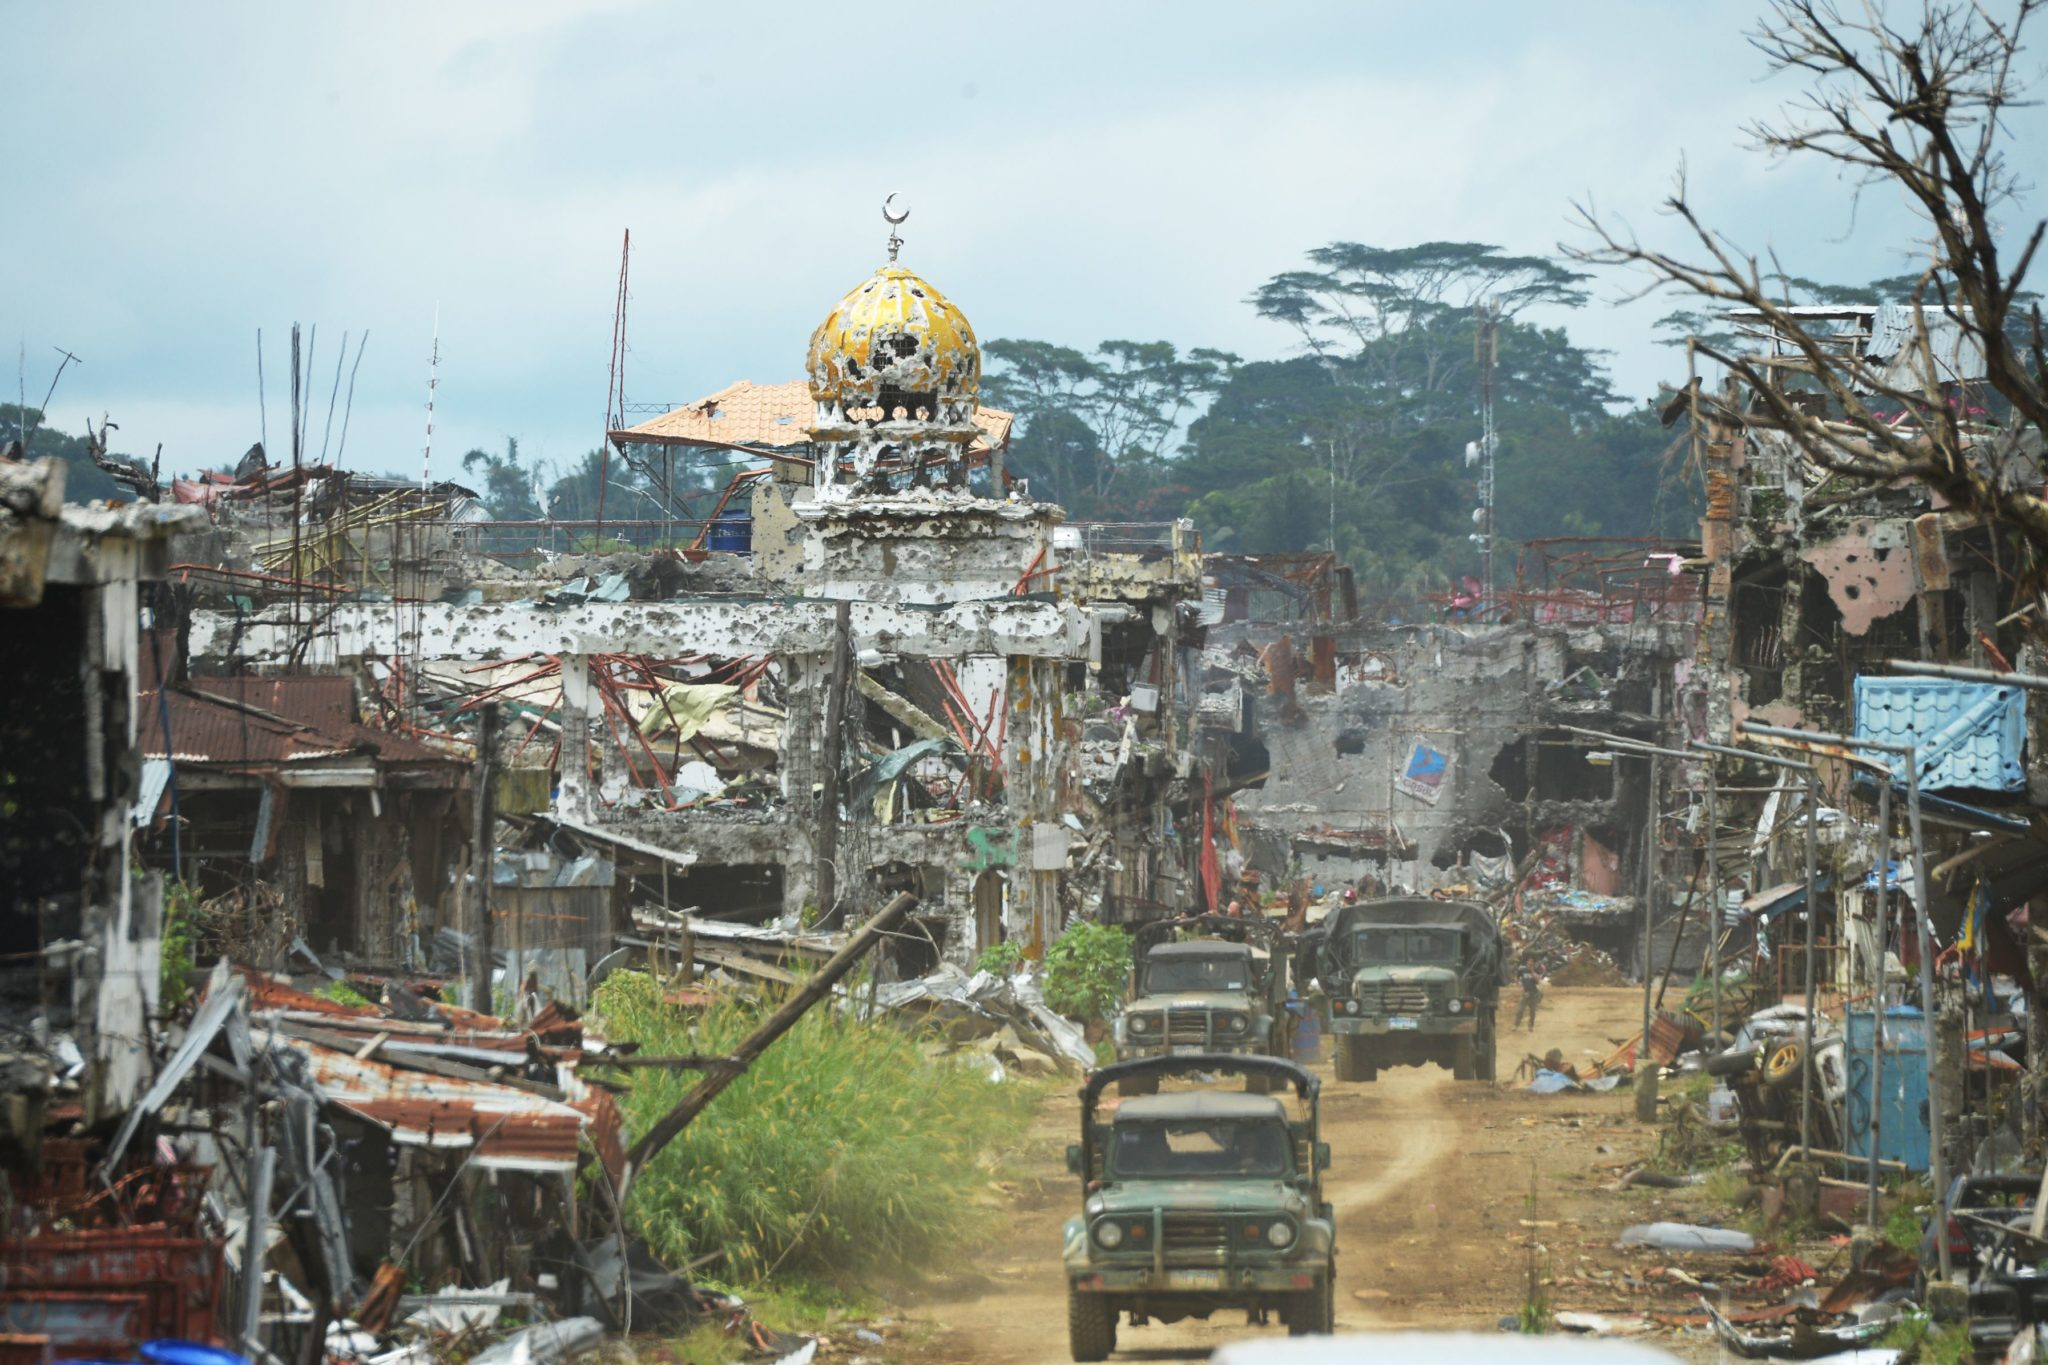 The 'Battle of Marawi': Death and destruction in the Philippines